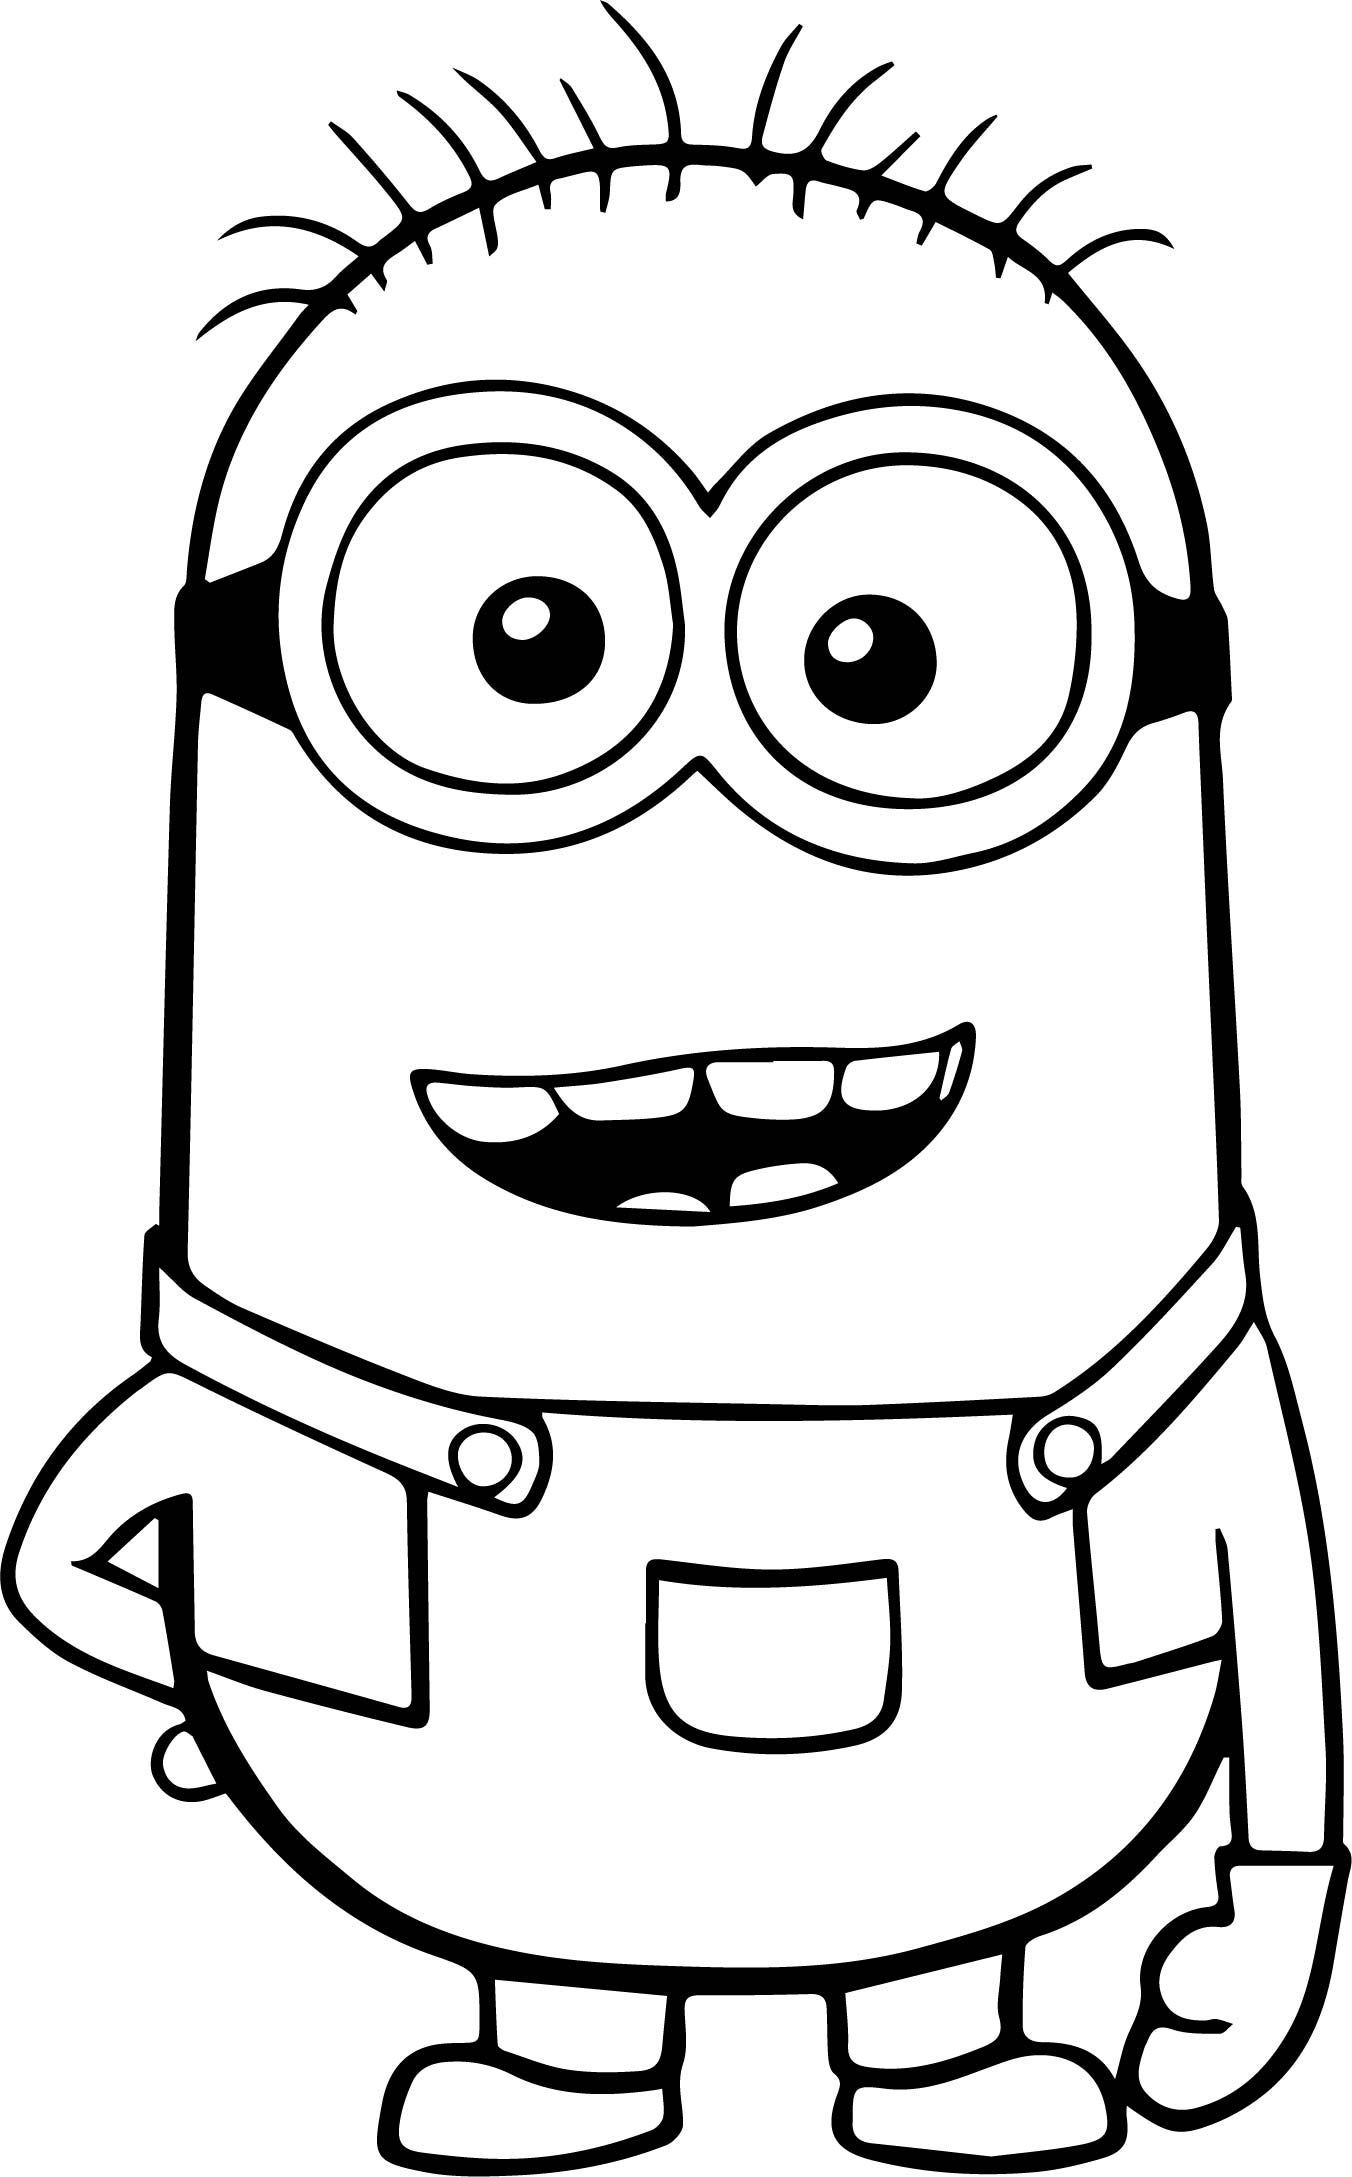 Minion Ha Ha Coloring Page Wecoloringpage In With